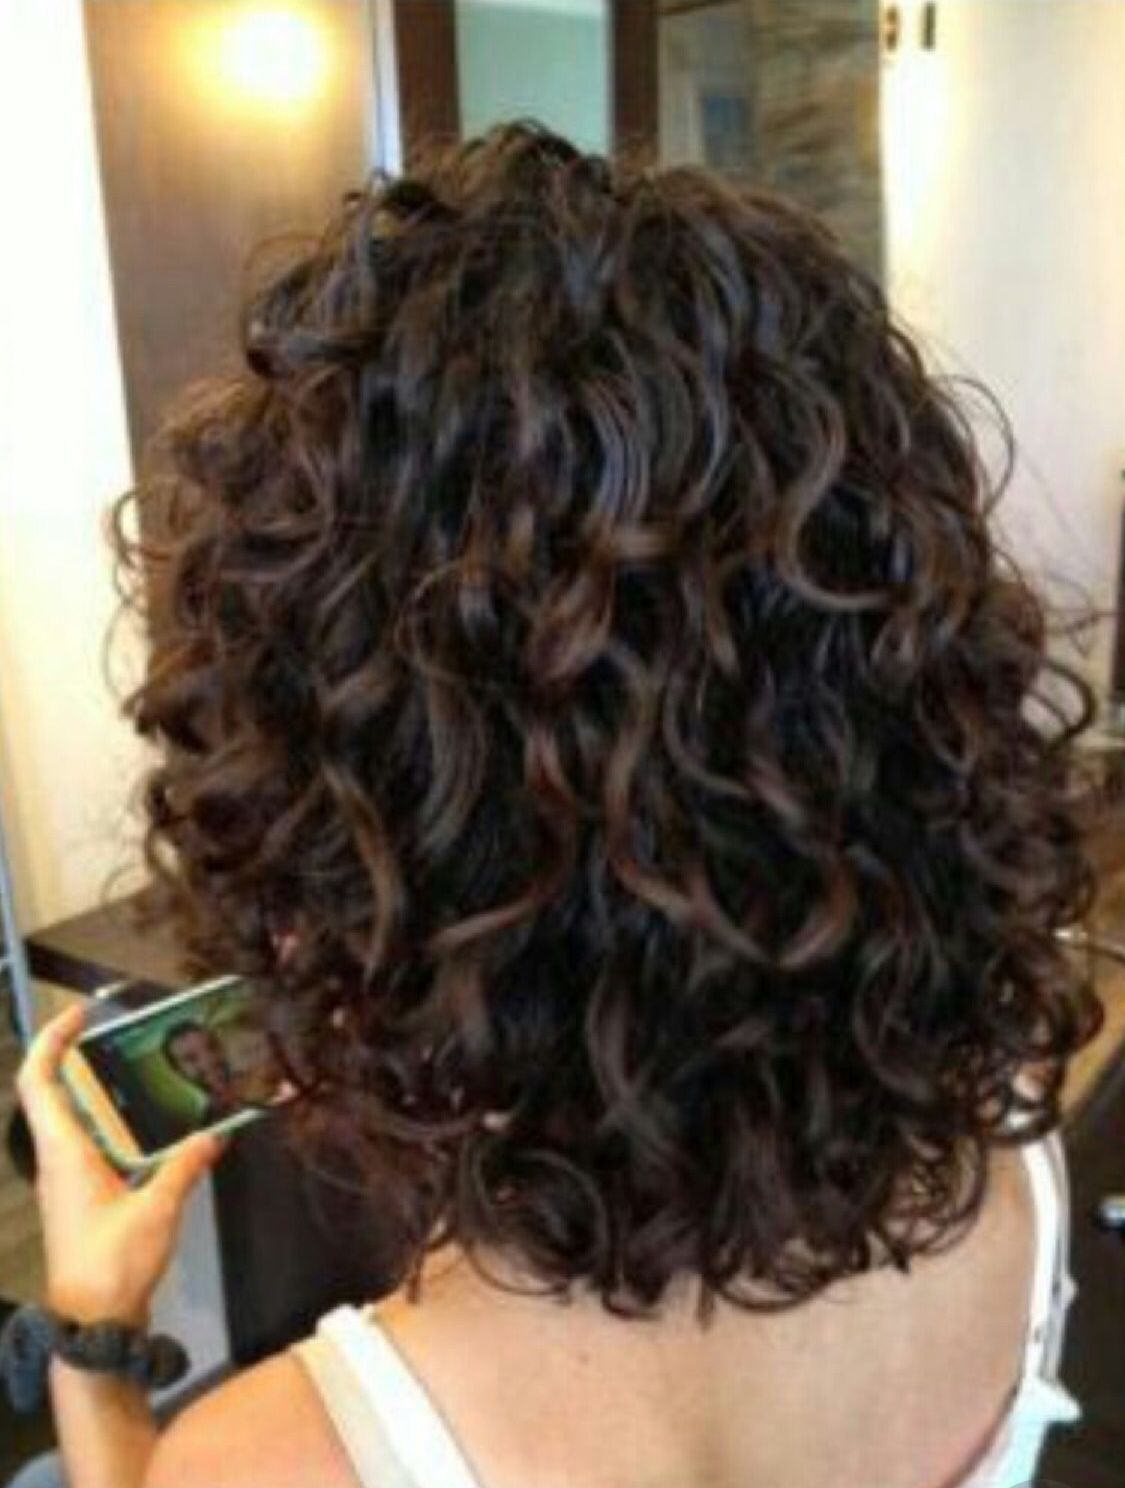 Maybe A Little Slightly Little Less Curly Medium Curly Hair Styles Curly Hair Styles Thick Hair Styles